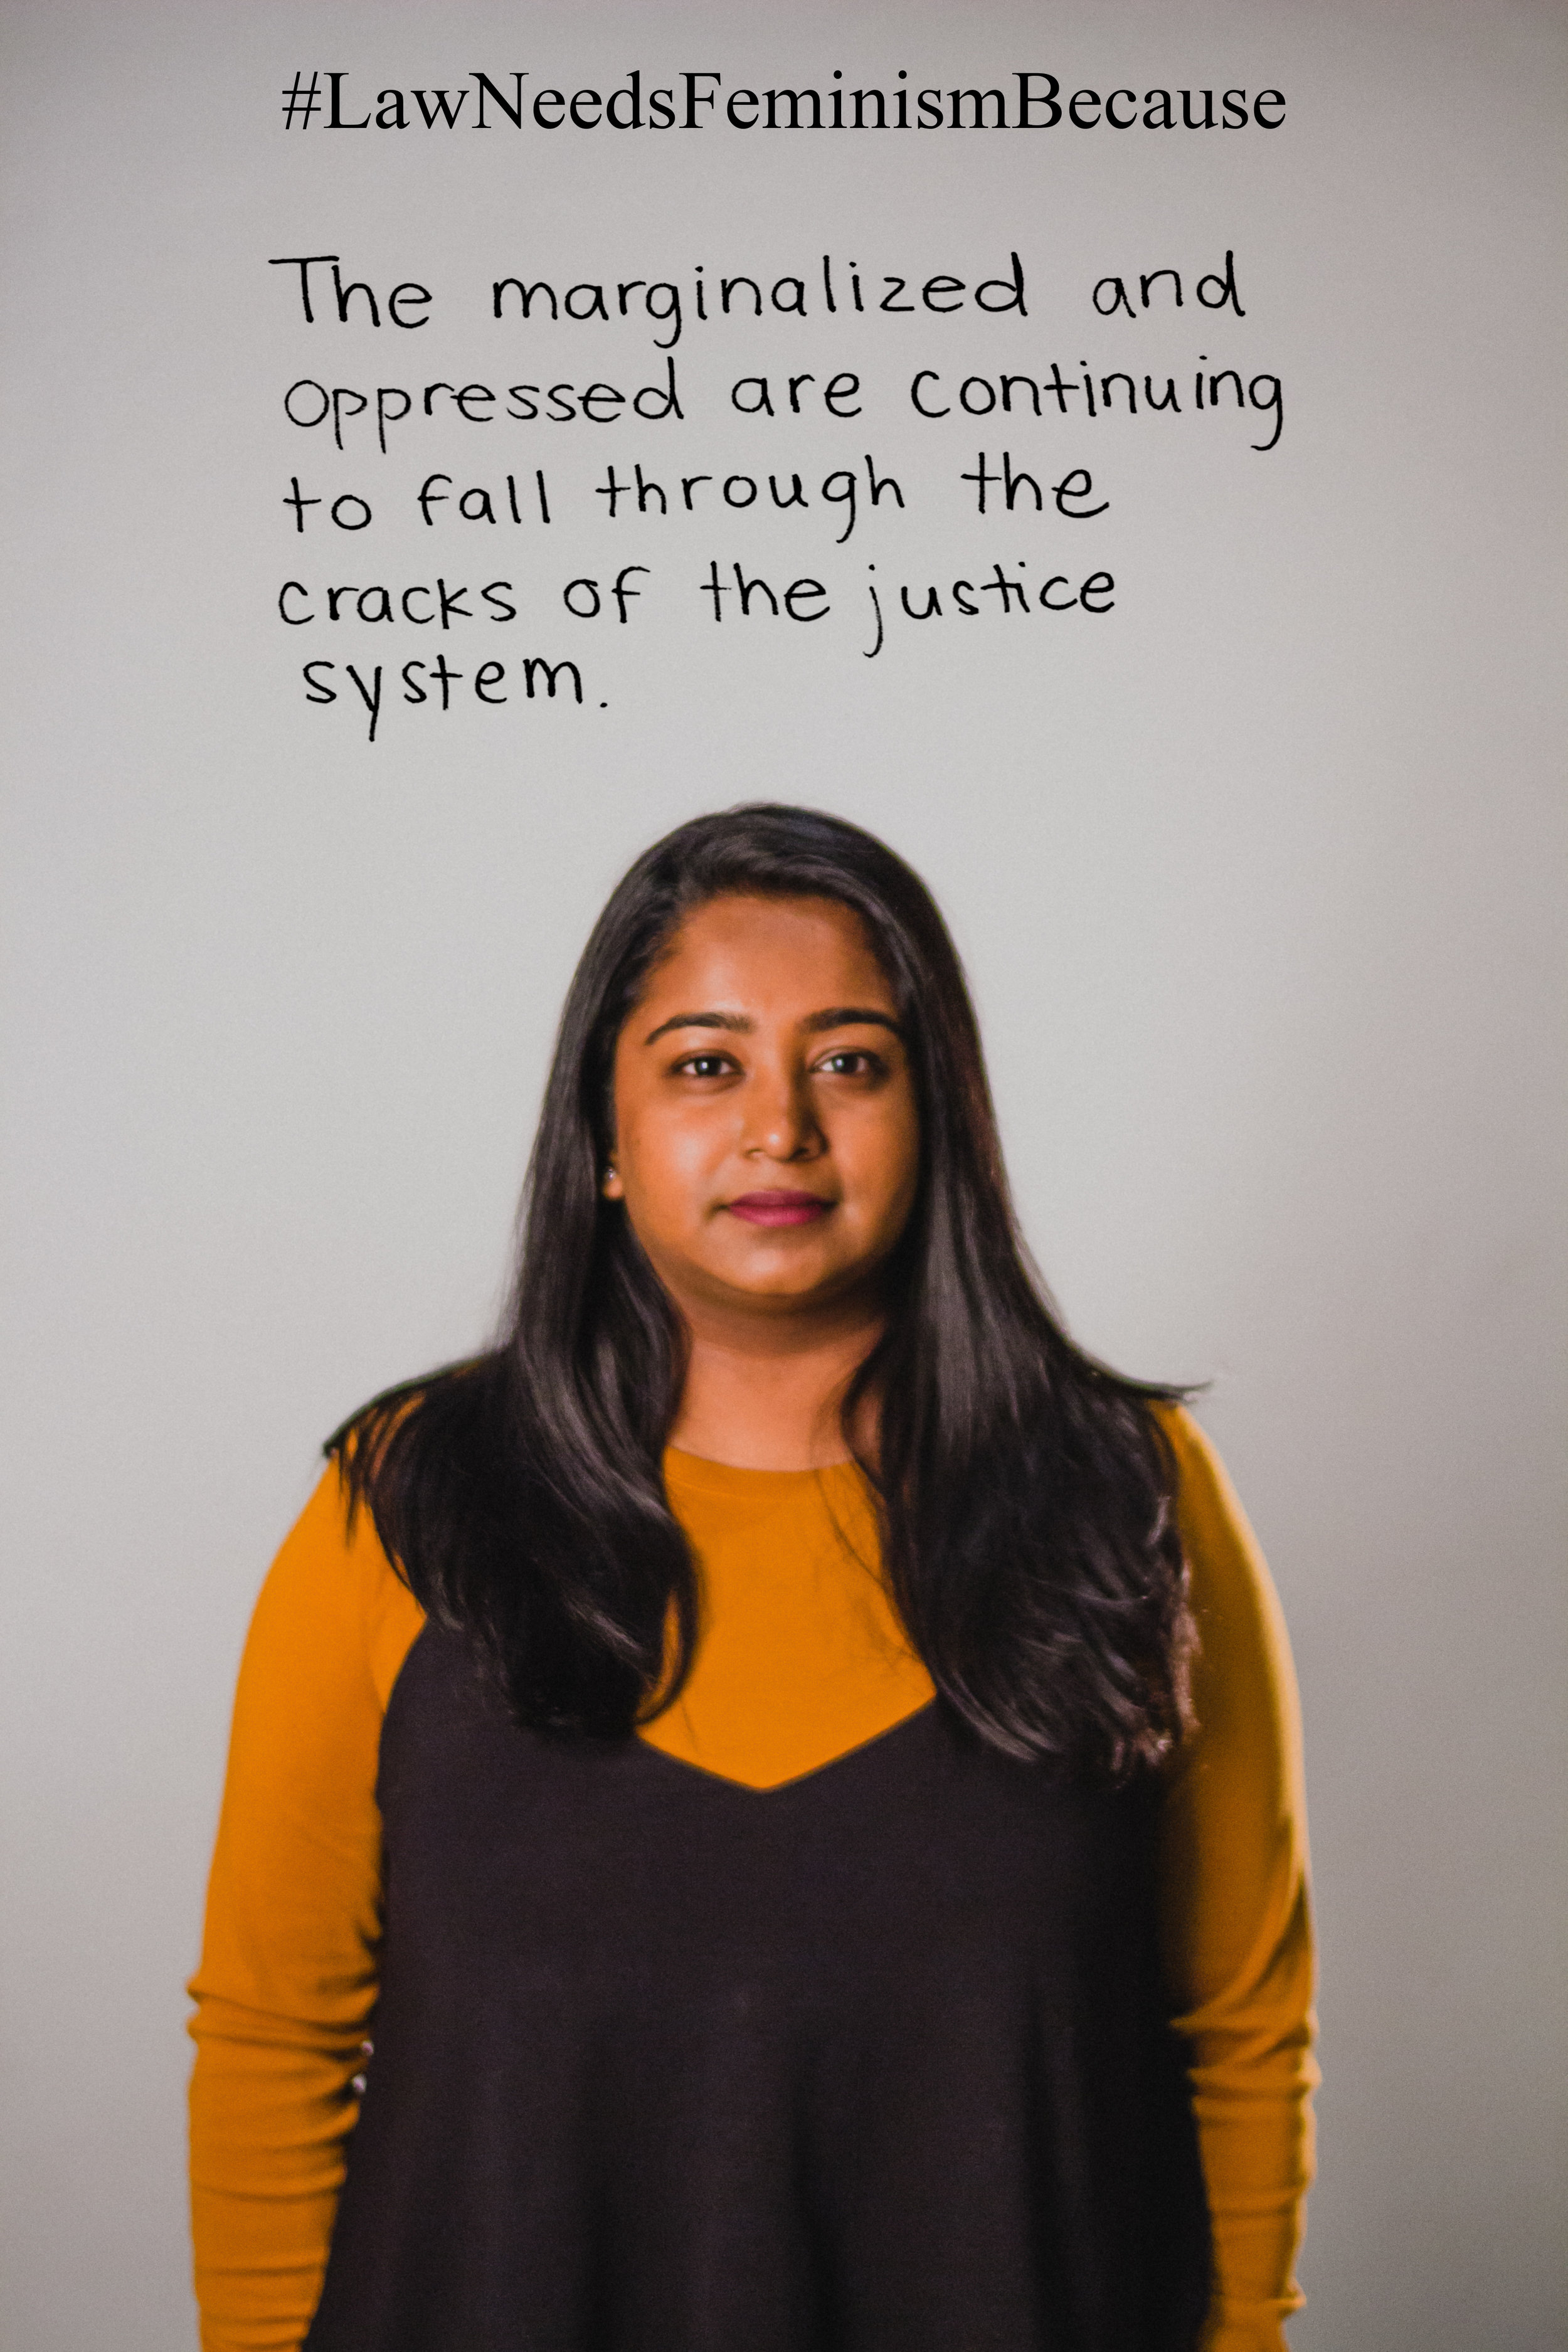 """Law Needs Feminism Because  """"The marginalized and oppressed are continuing to fall through the cracks of the justice system."""""""